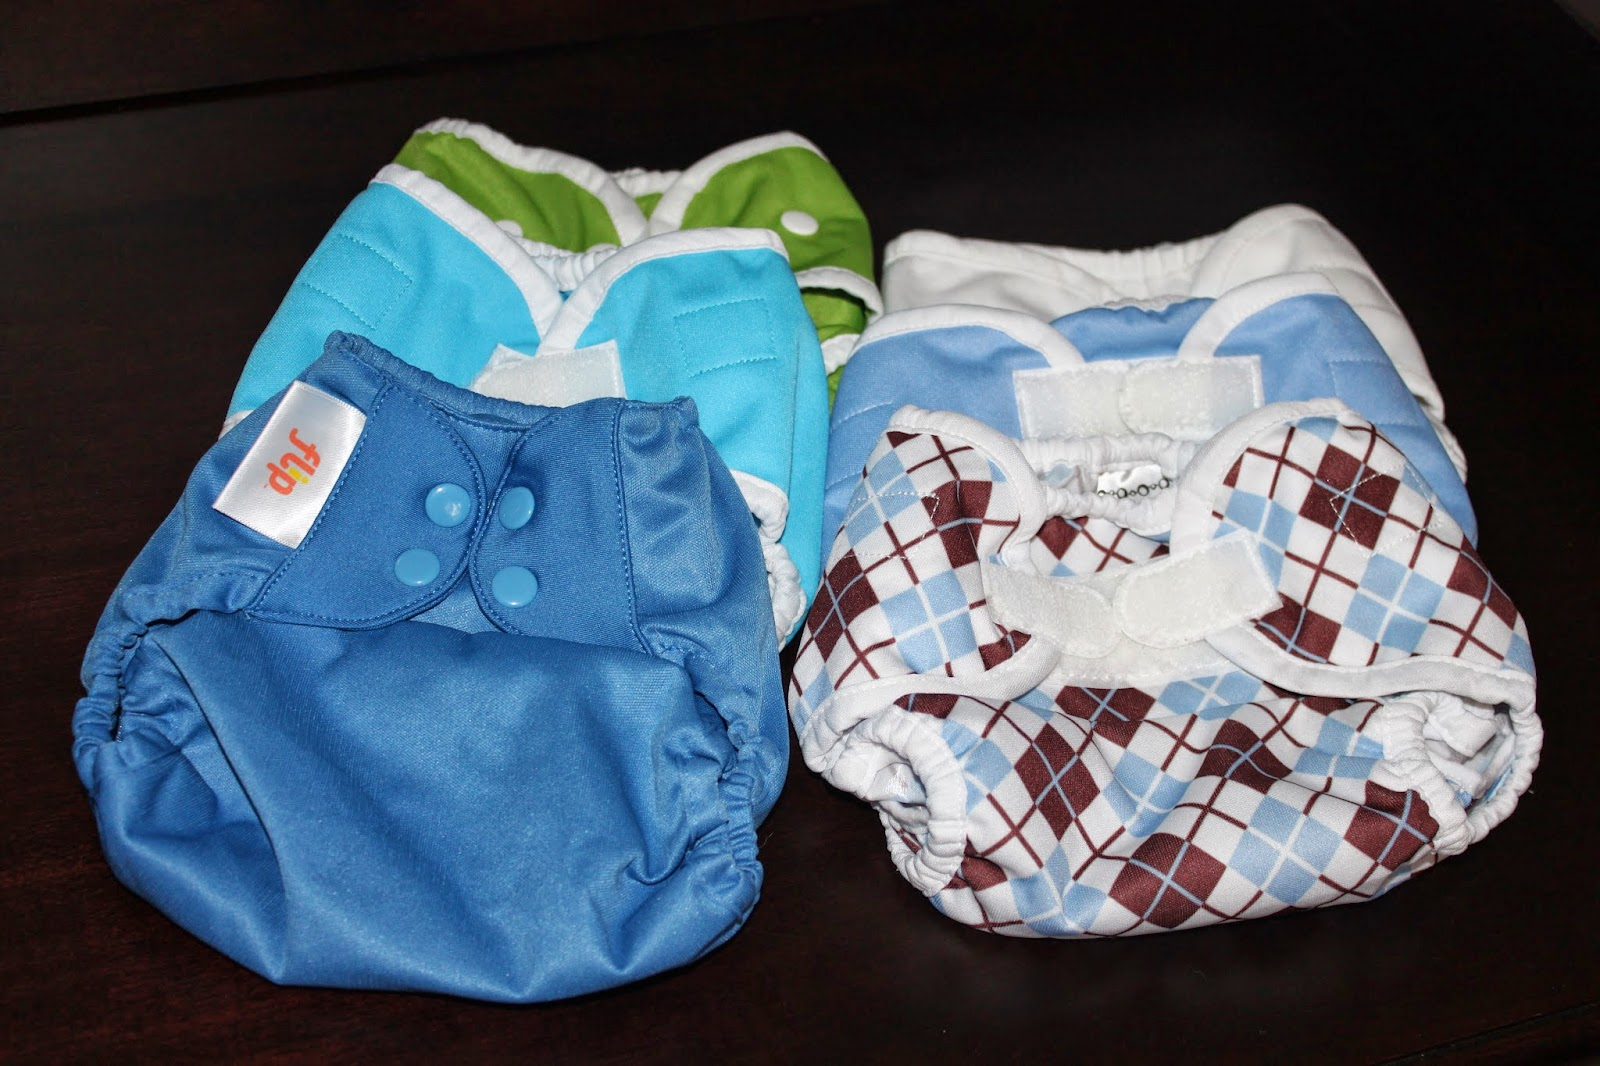 Diapering husband for bed - Large Planet Wise Wetbag We Will Use A Planet Wise In Our Bedroom For Diaper Changes We Do In There This Fairly Large Bag Is Waterproof And Has A